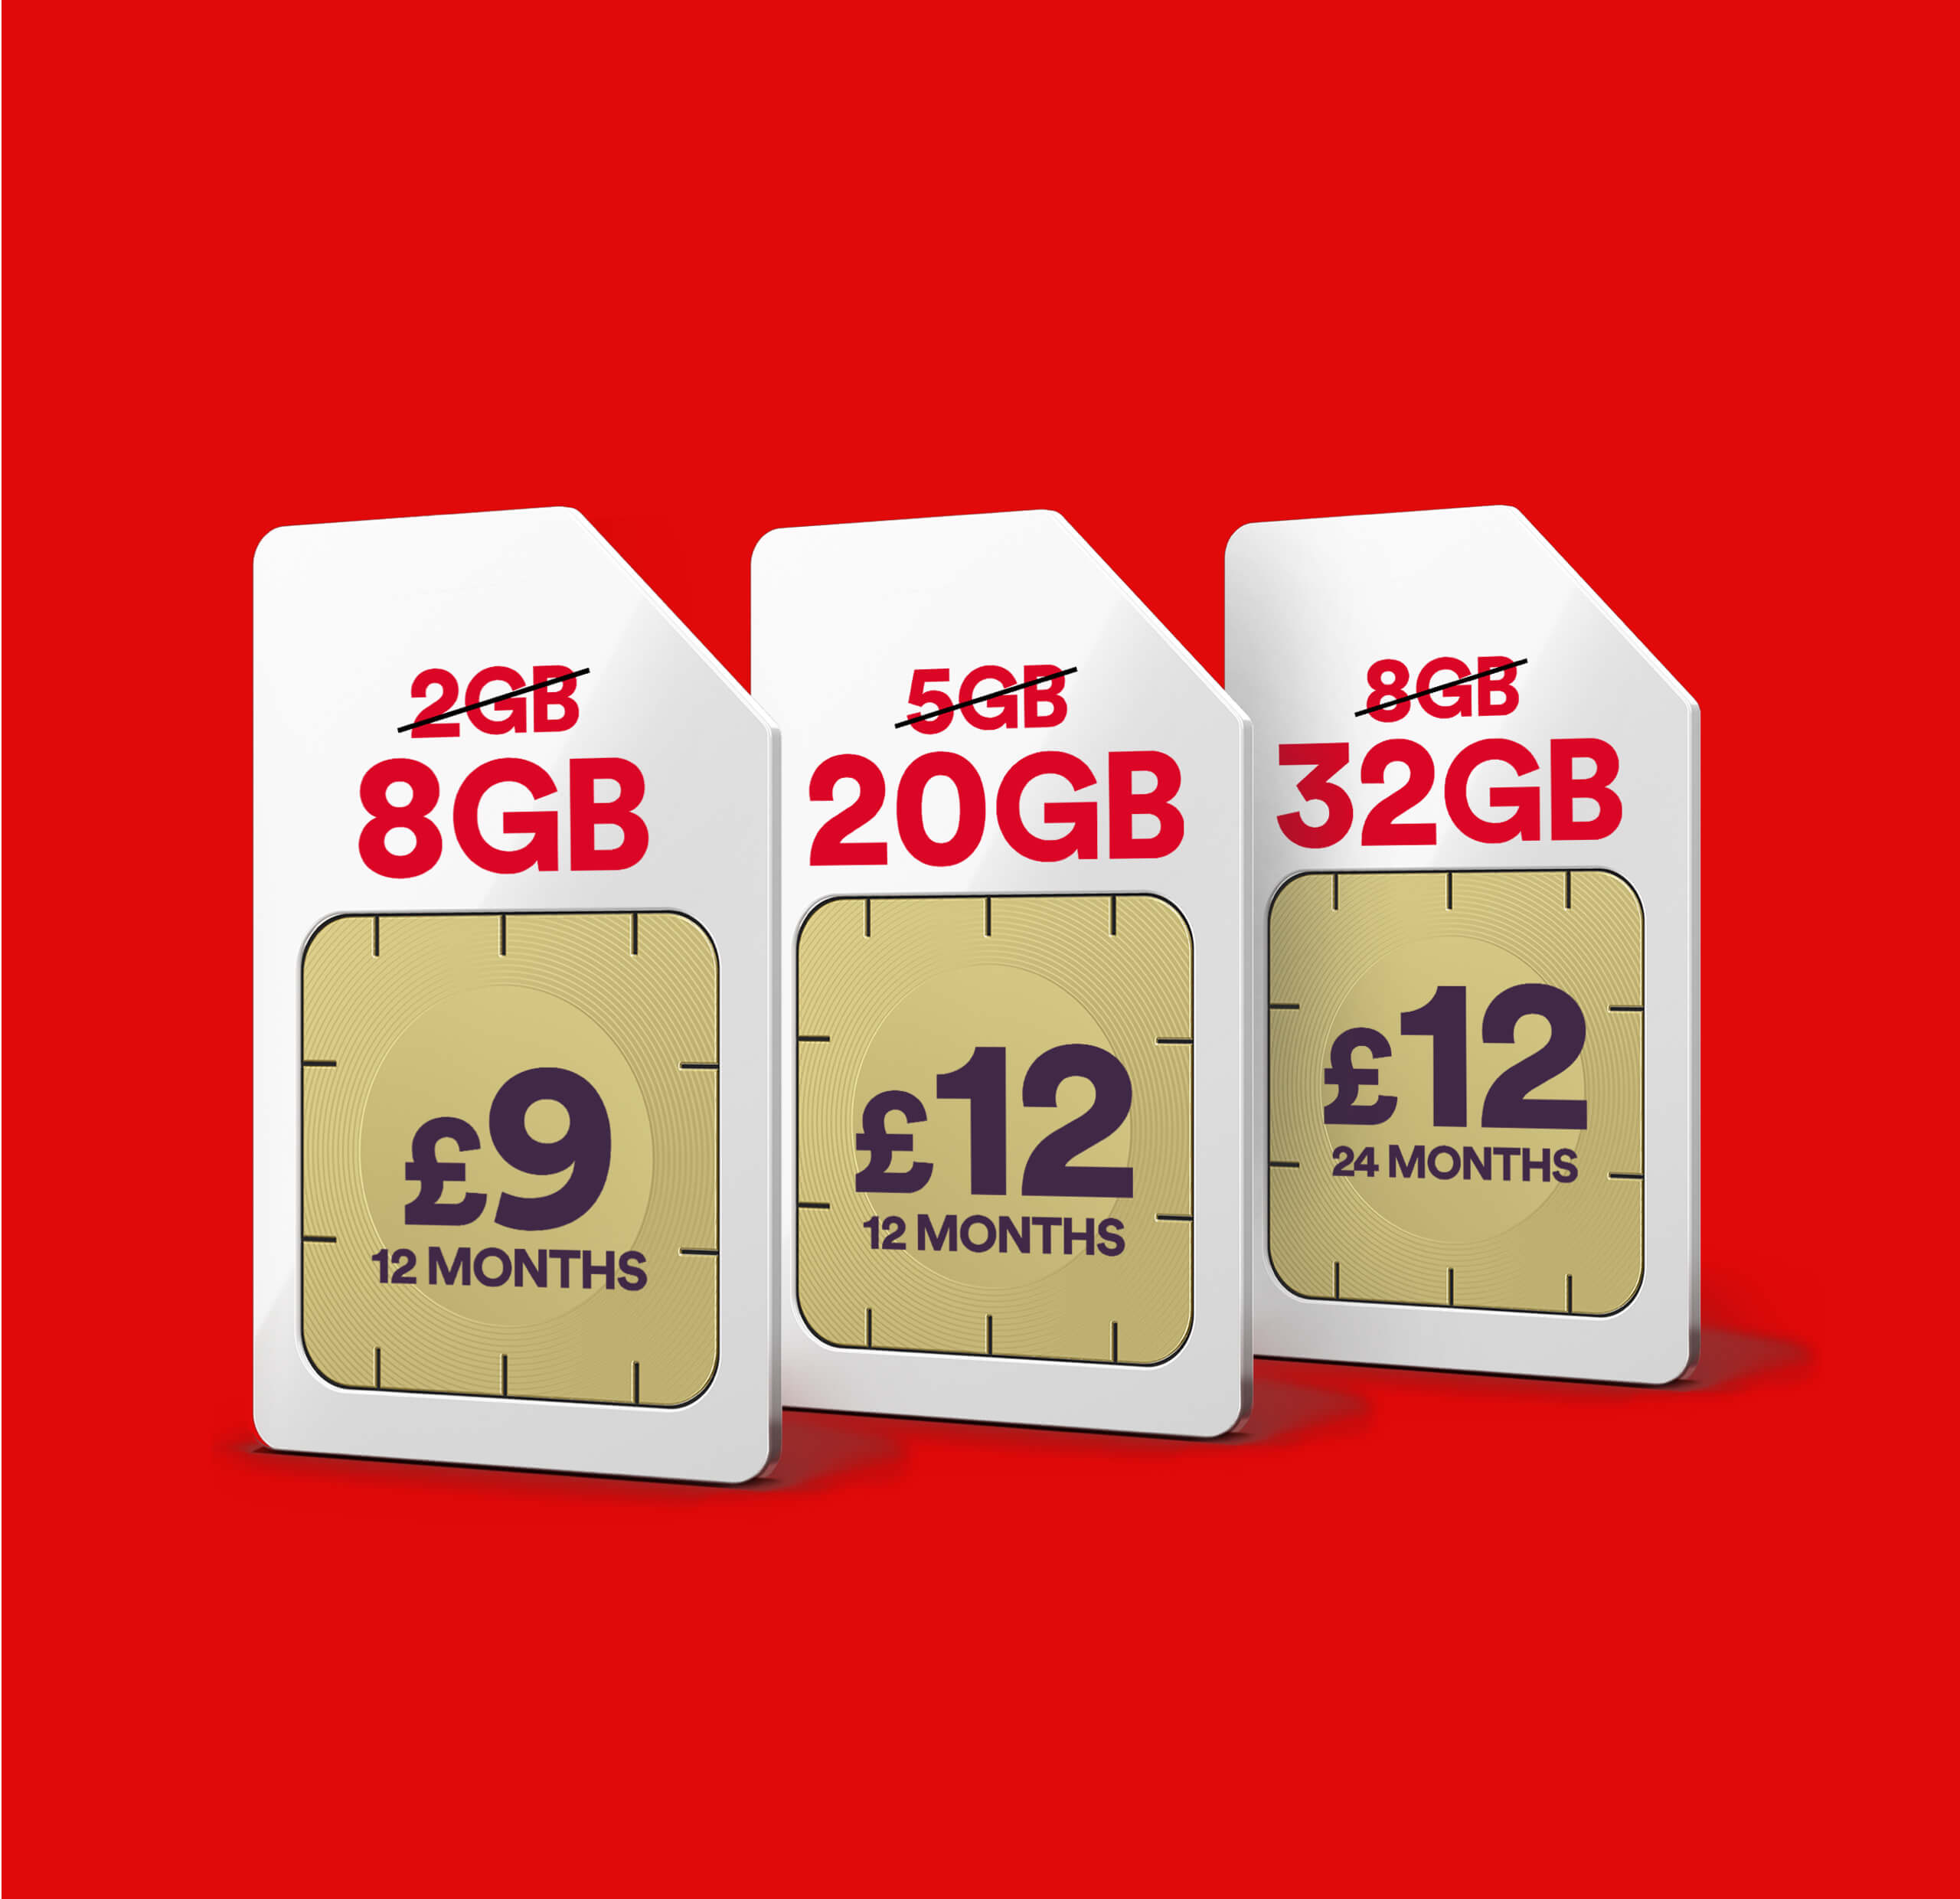 Unlimited SIM flash sale